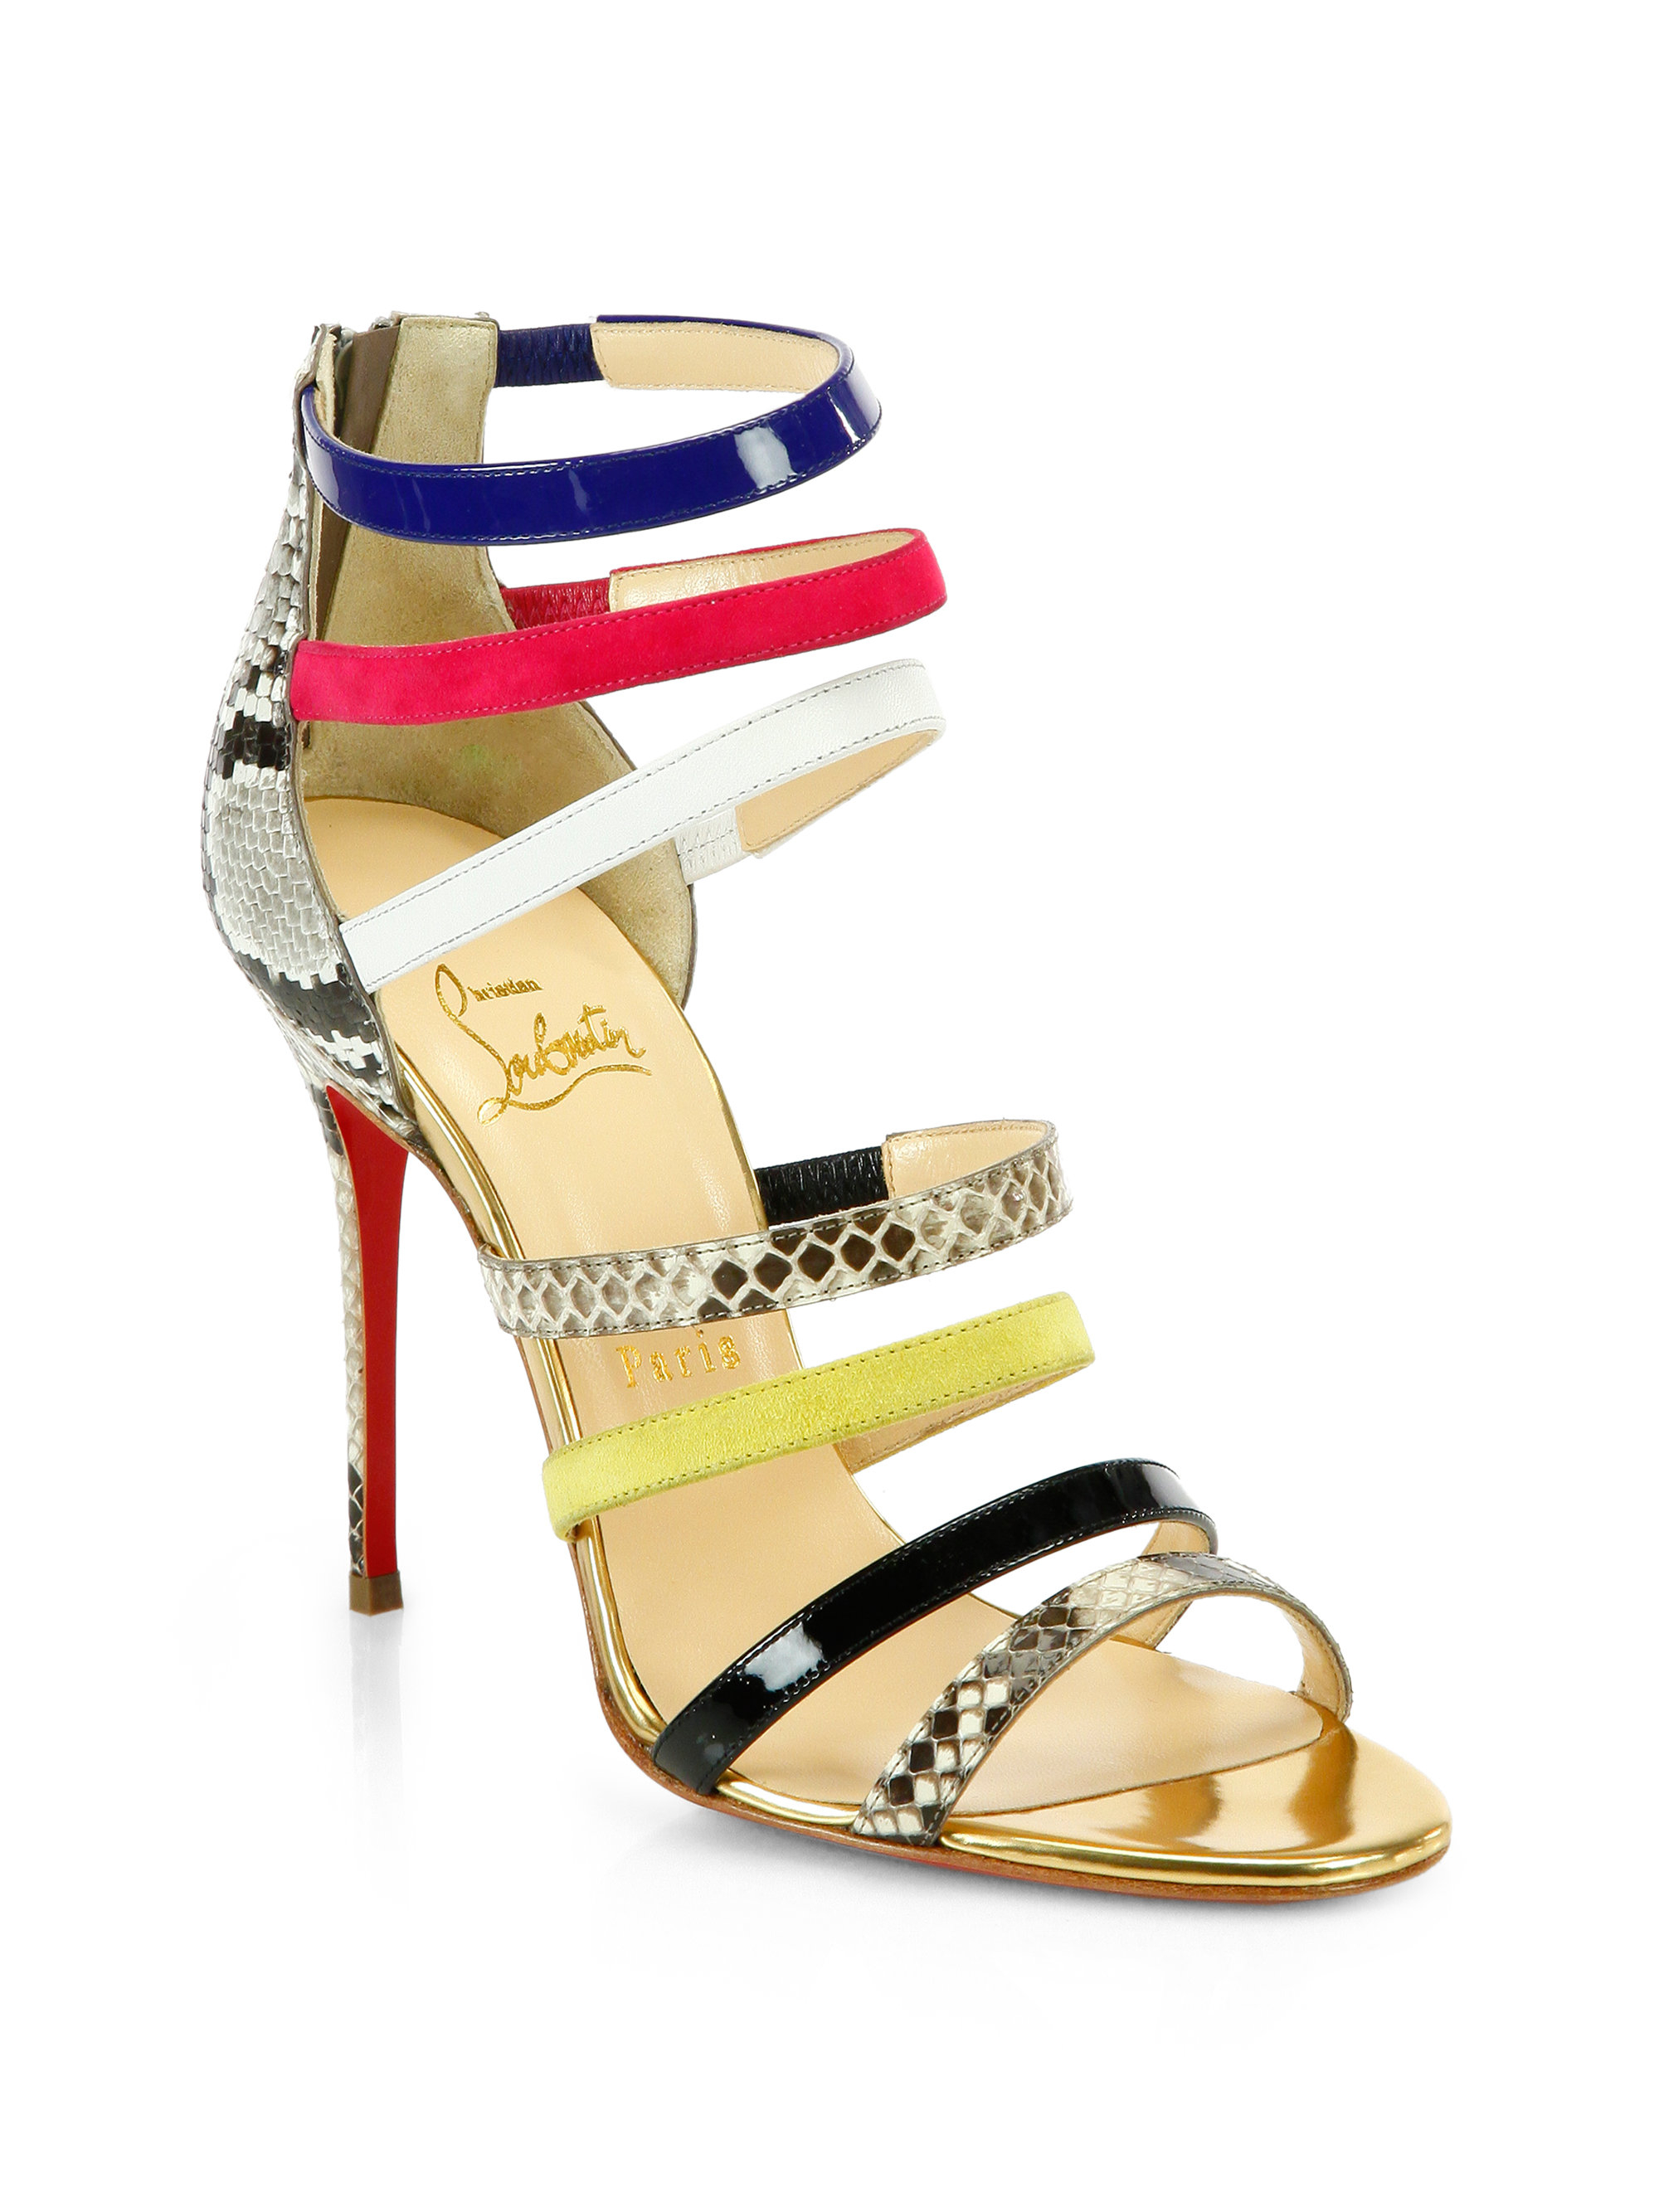 louboutin sandals Multicolore